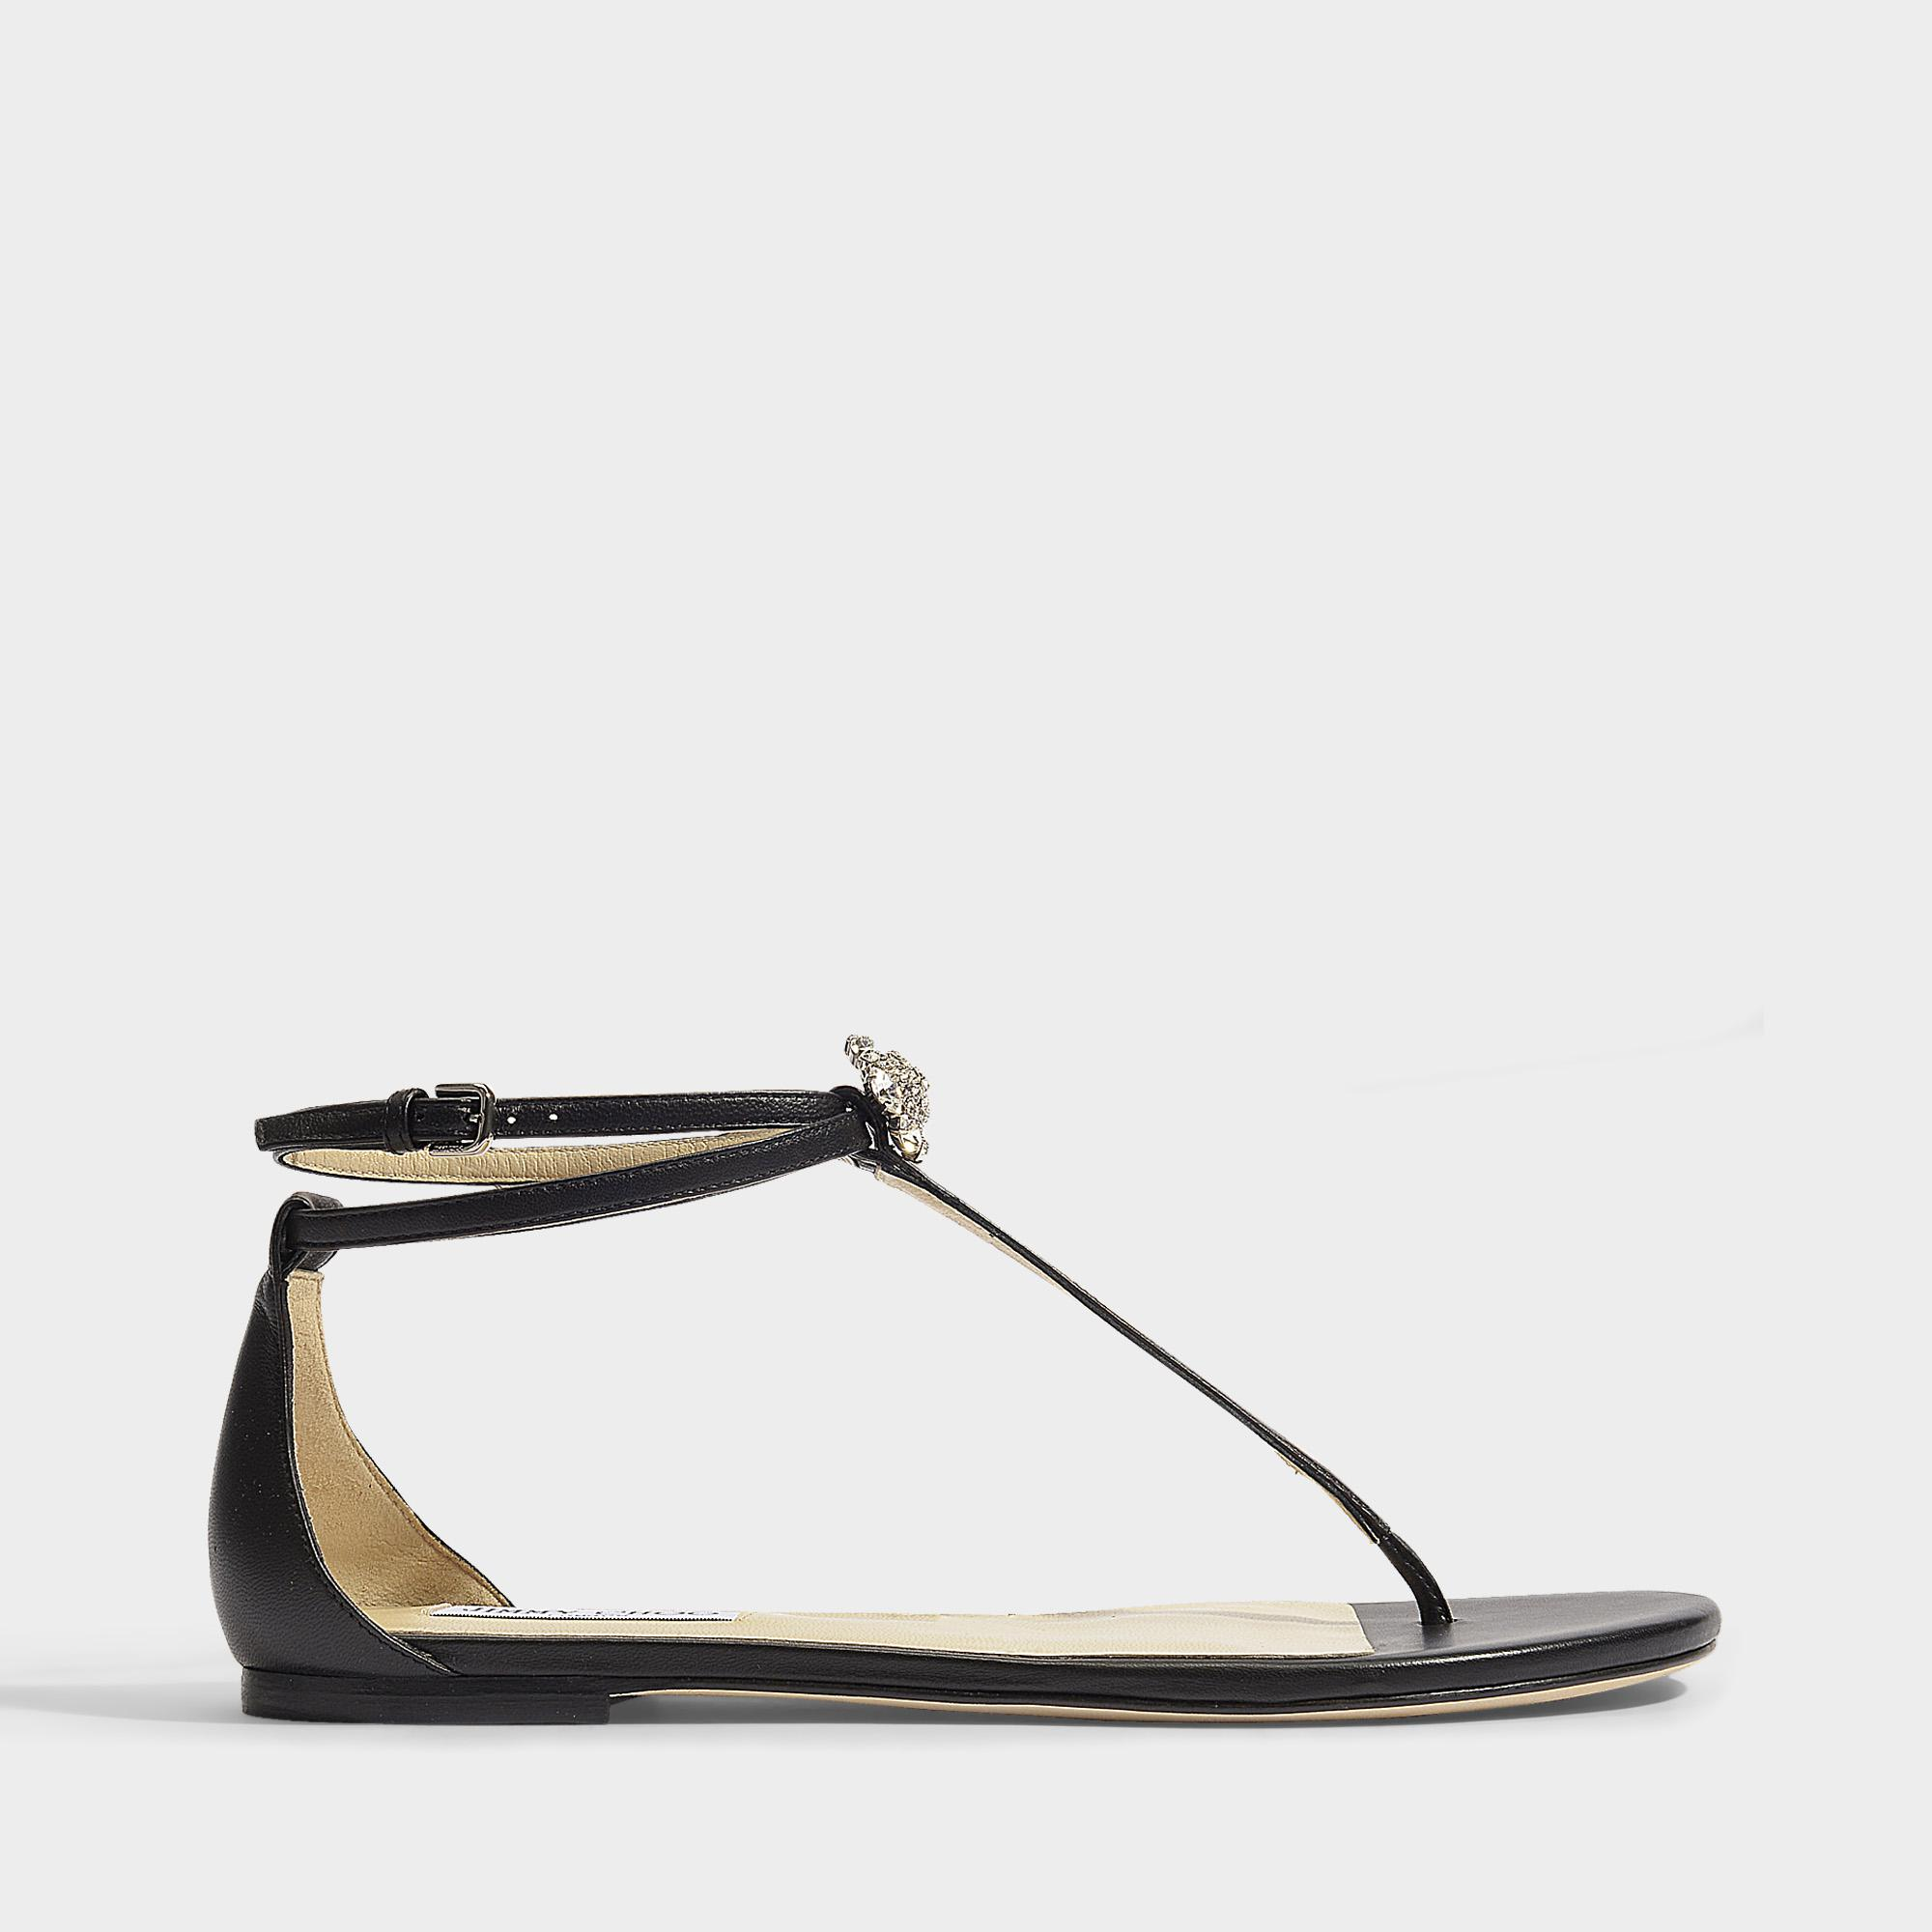 c175d13d3ff31 Jimmy Choo Afia Flat Sandals In Black And Silver Nappa Leather And ...